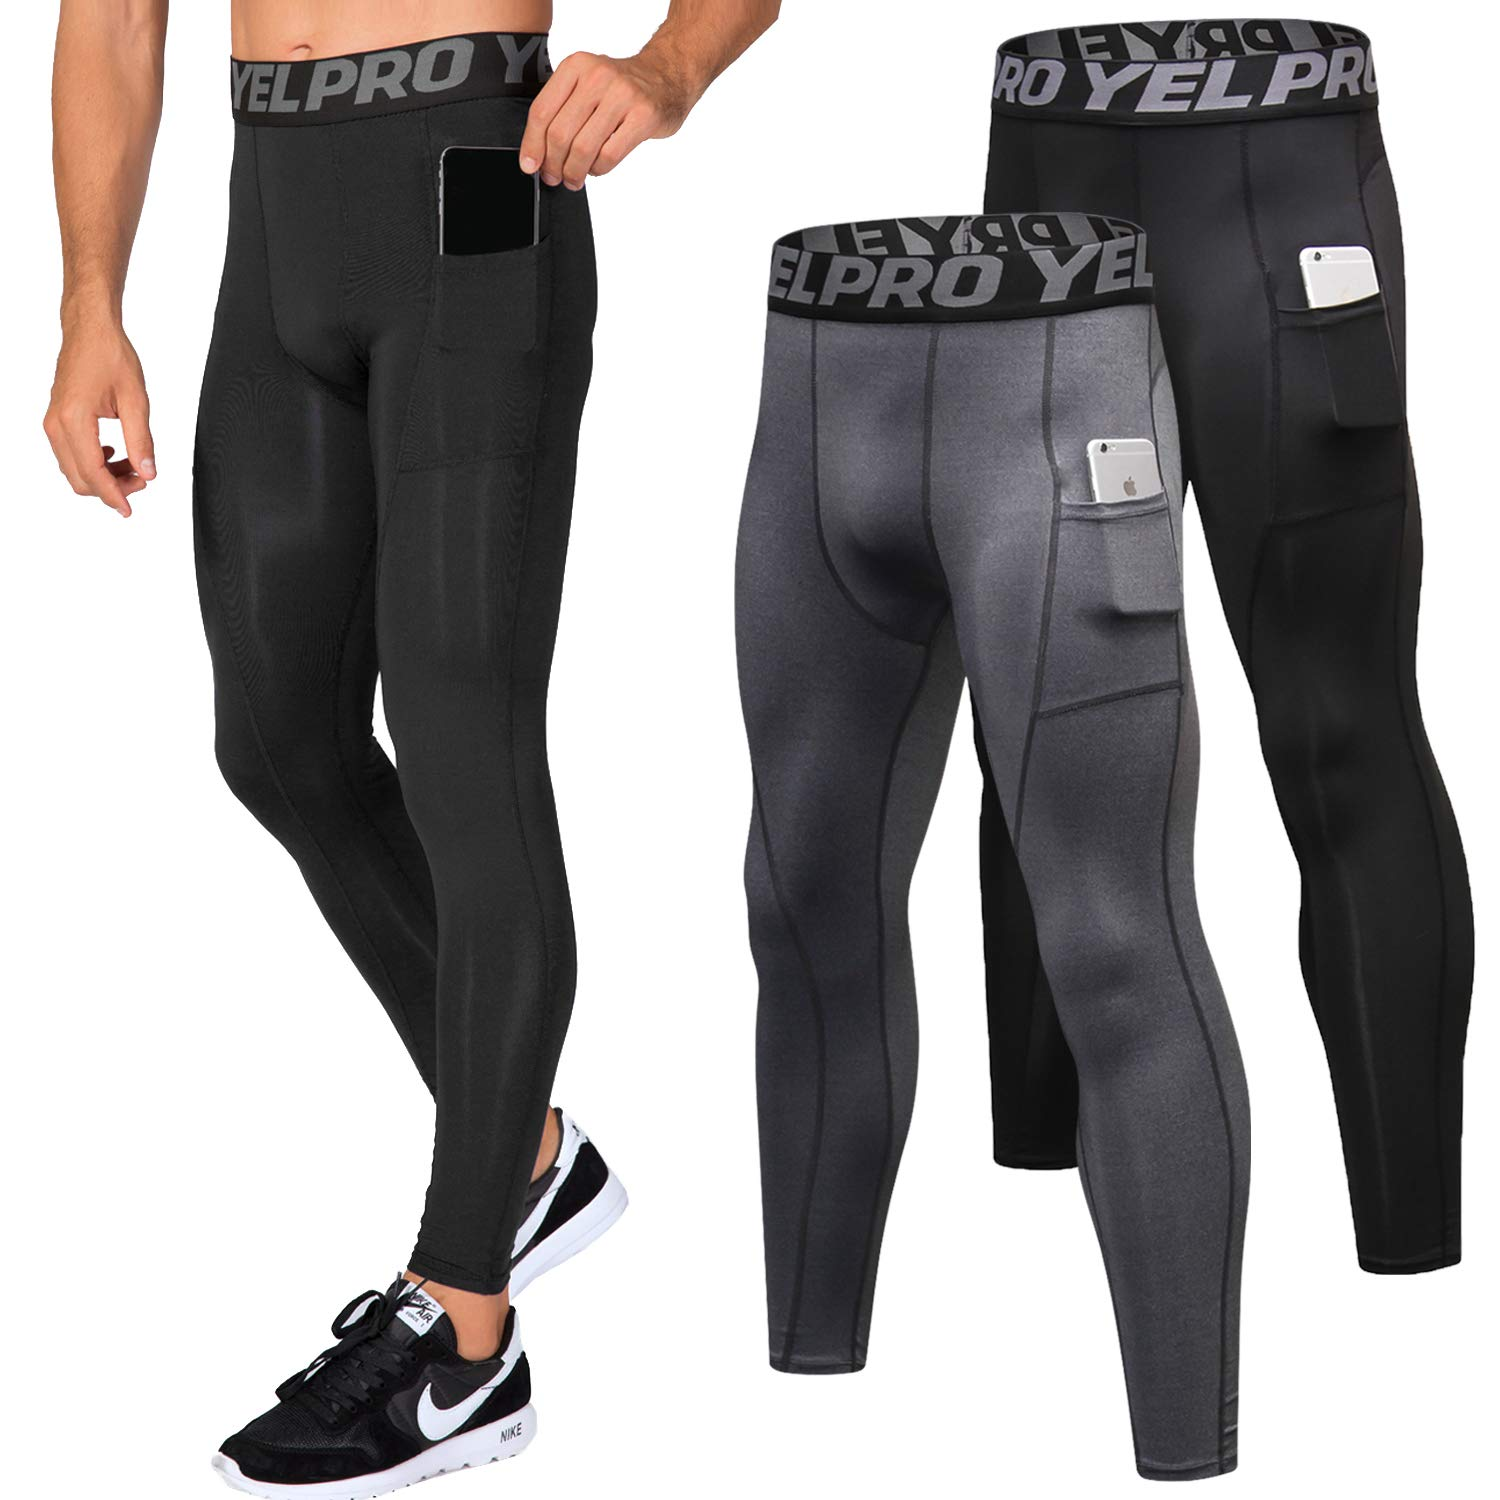 Lavento Men's Compression Pants Baselayer Cool Dry Pocket Running Ankle Leggings Active Tights (2 Pack-3911 Black/Gray,Large) by Lavento